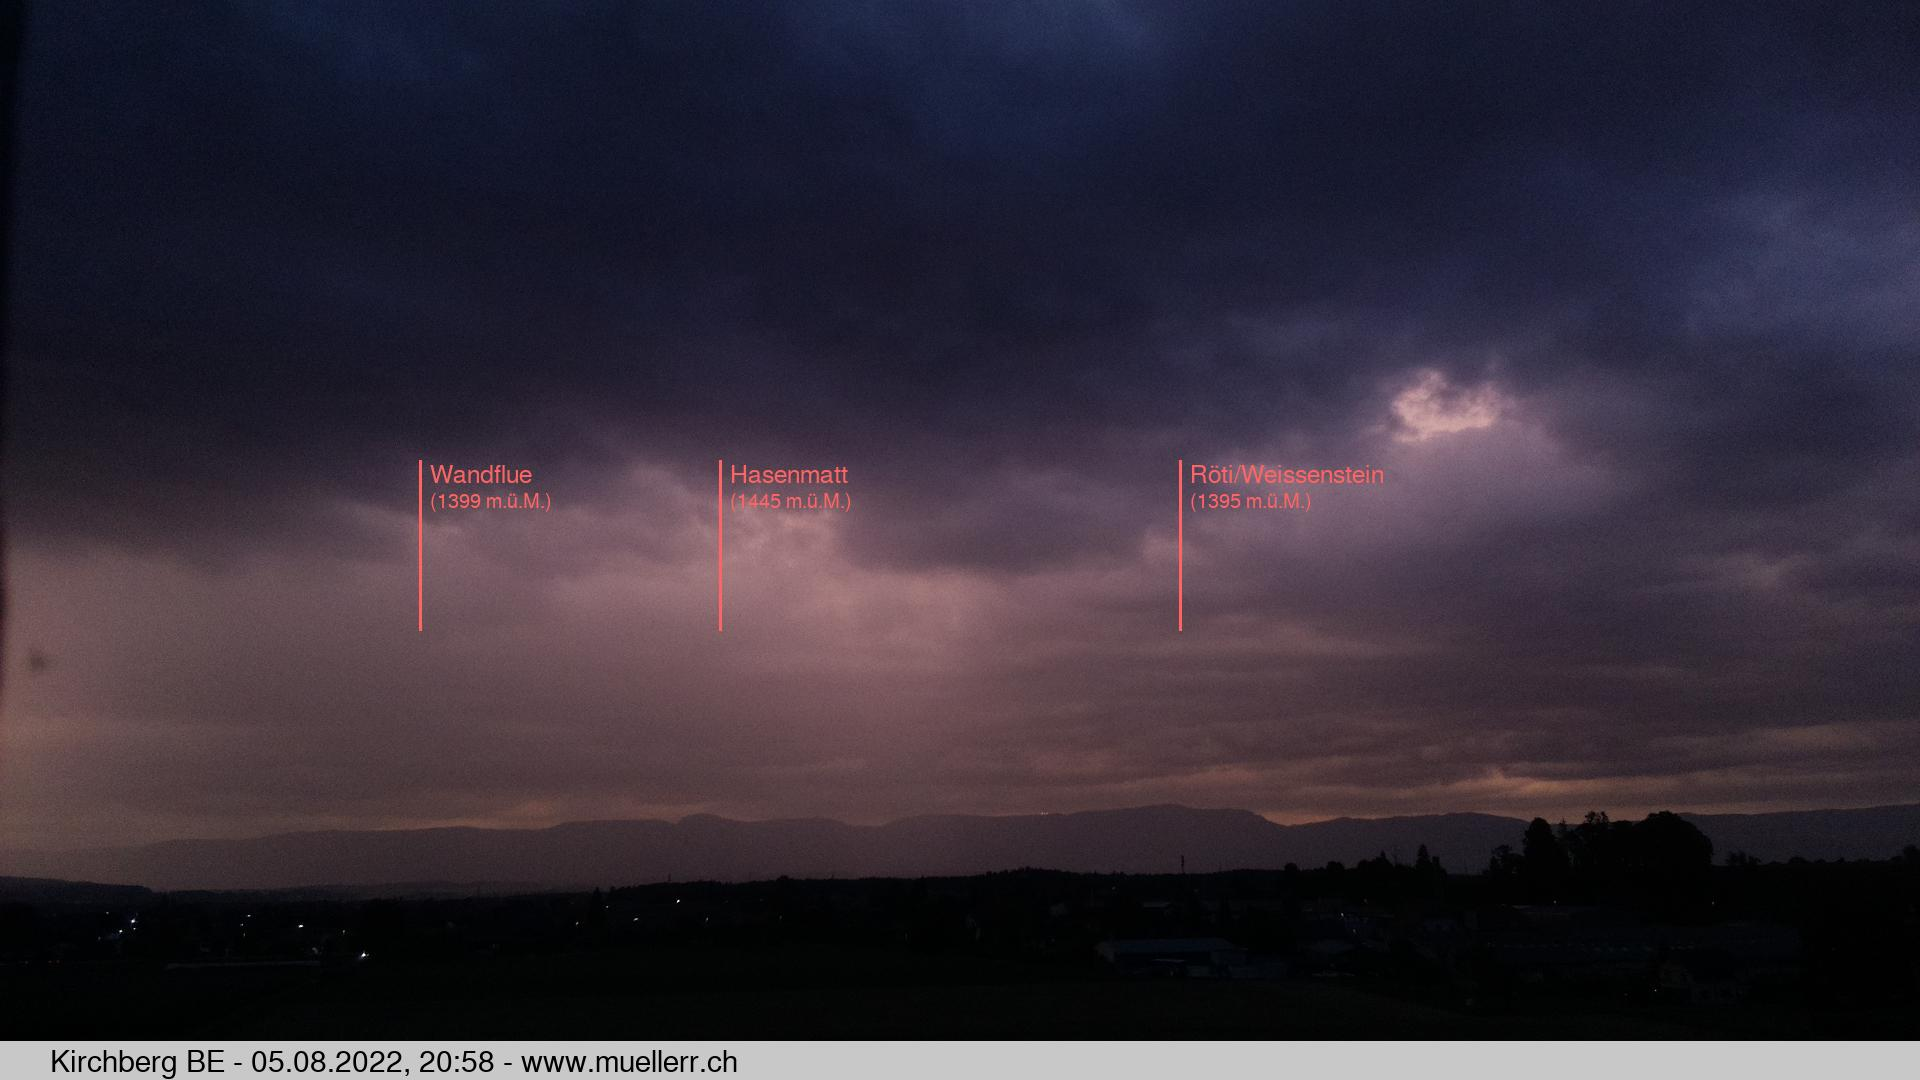 webcam kirchberg bern, towards chain jura